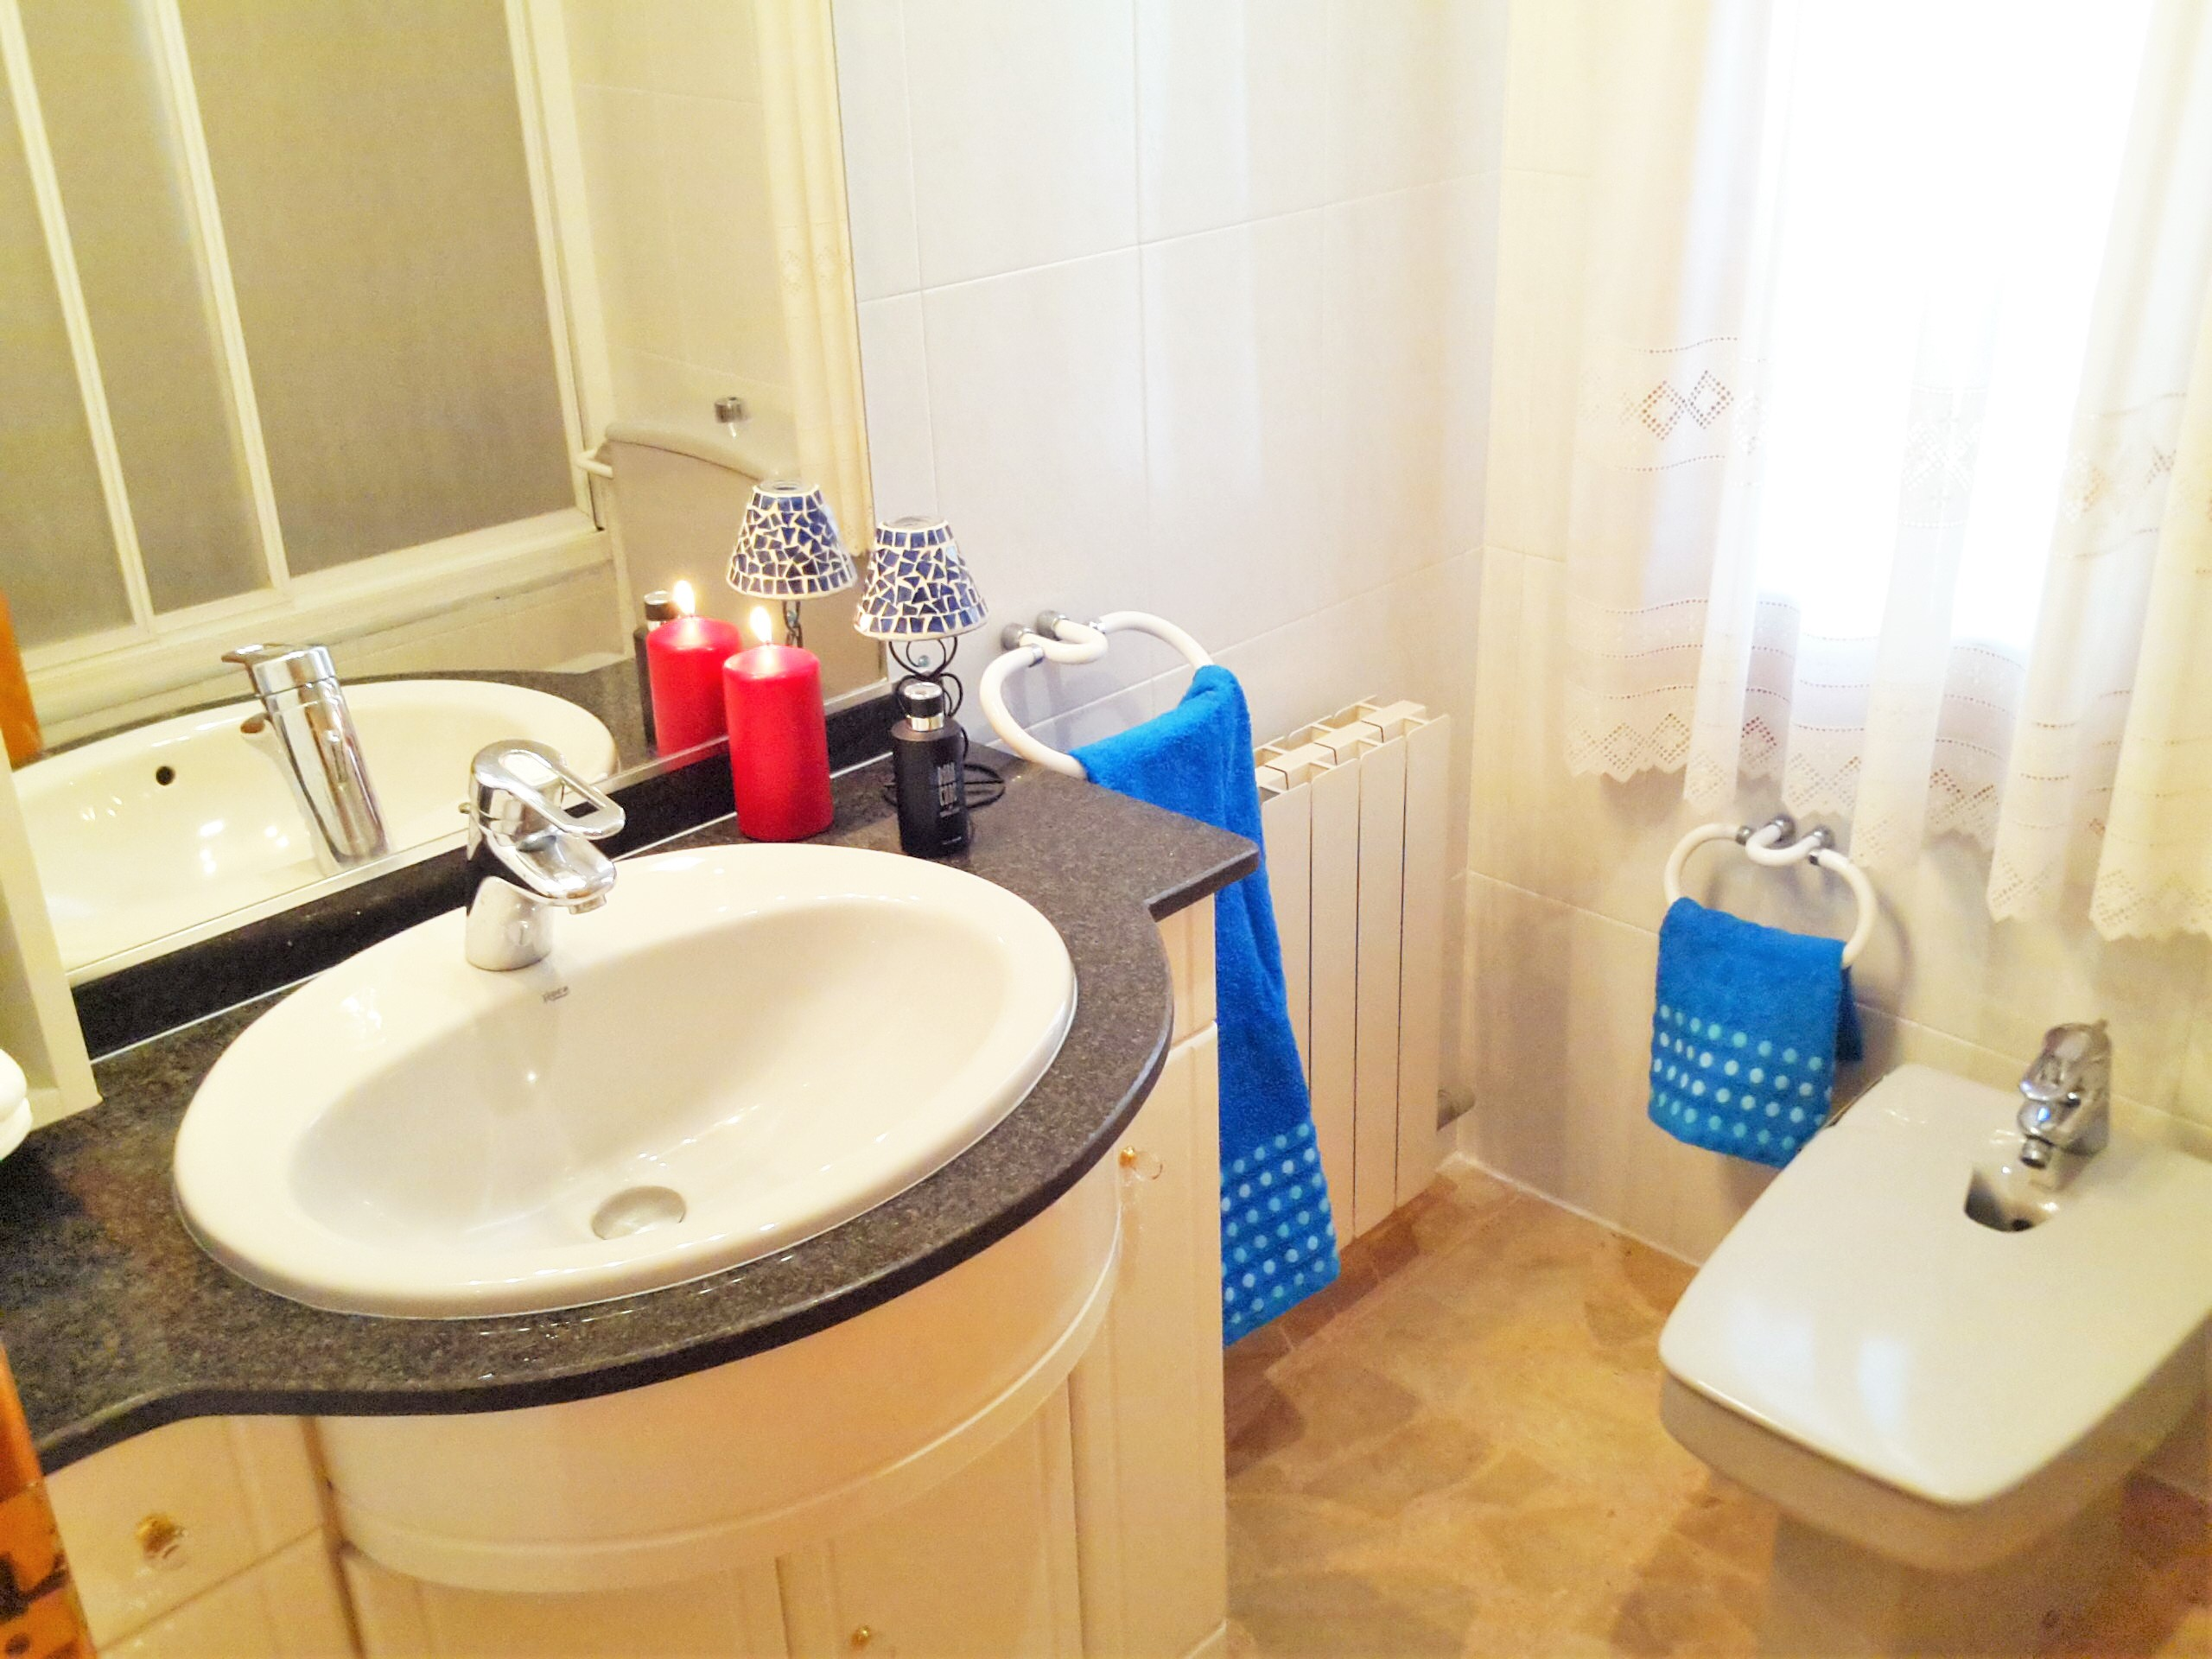 Bathroom I: bath-tube/shower, bidet